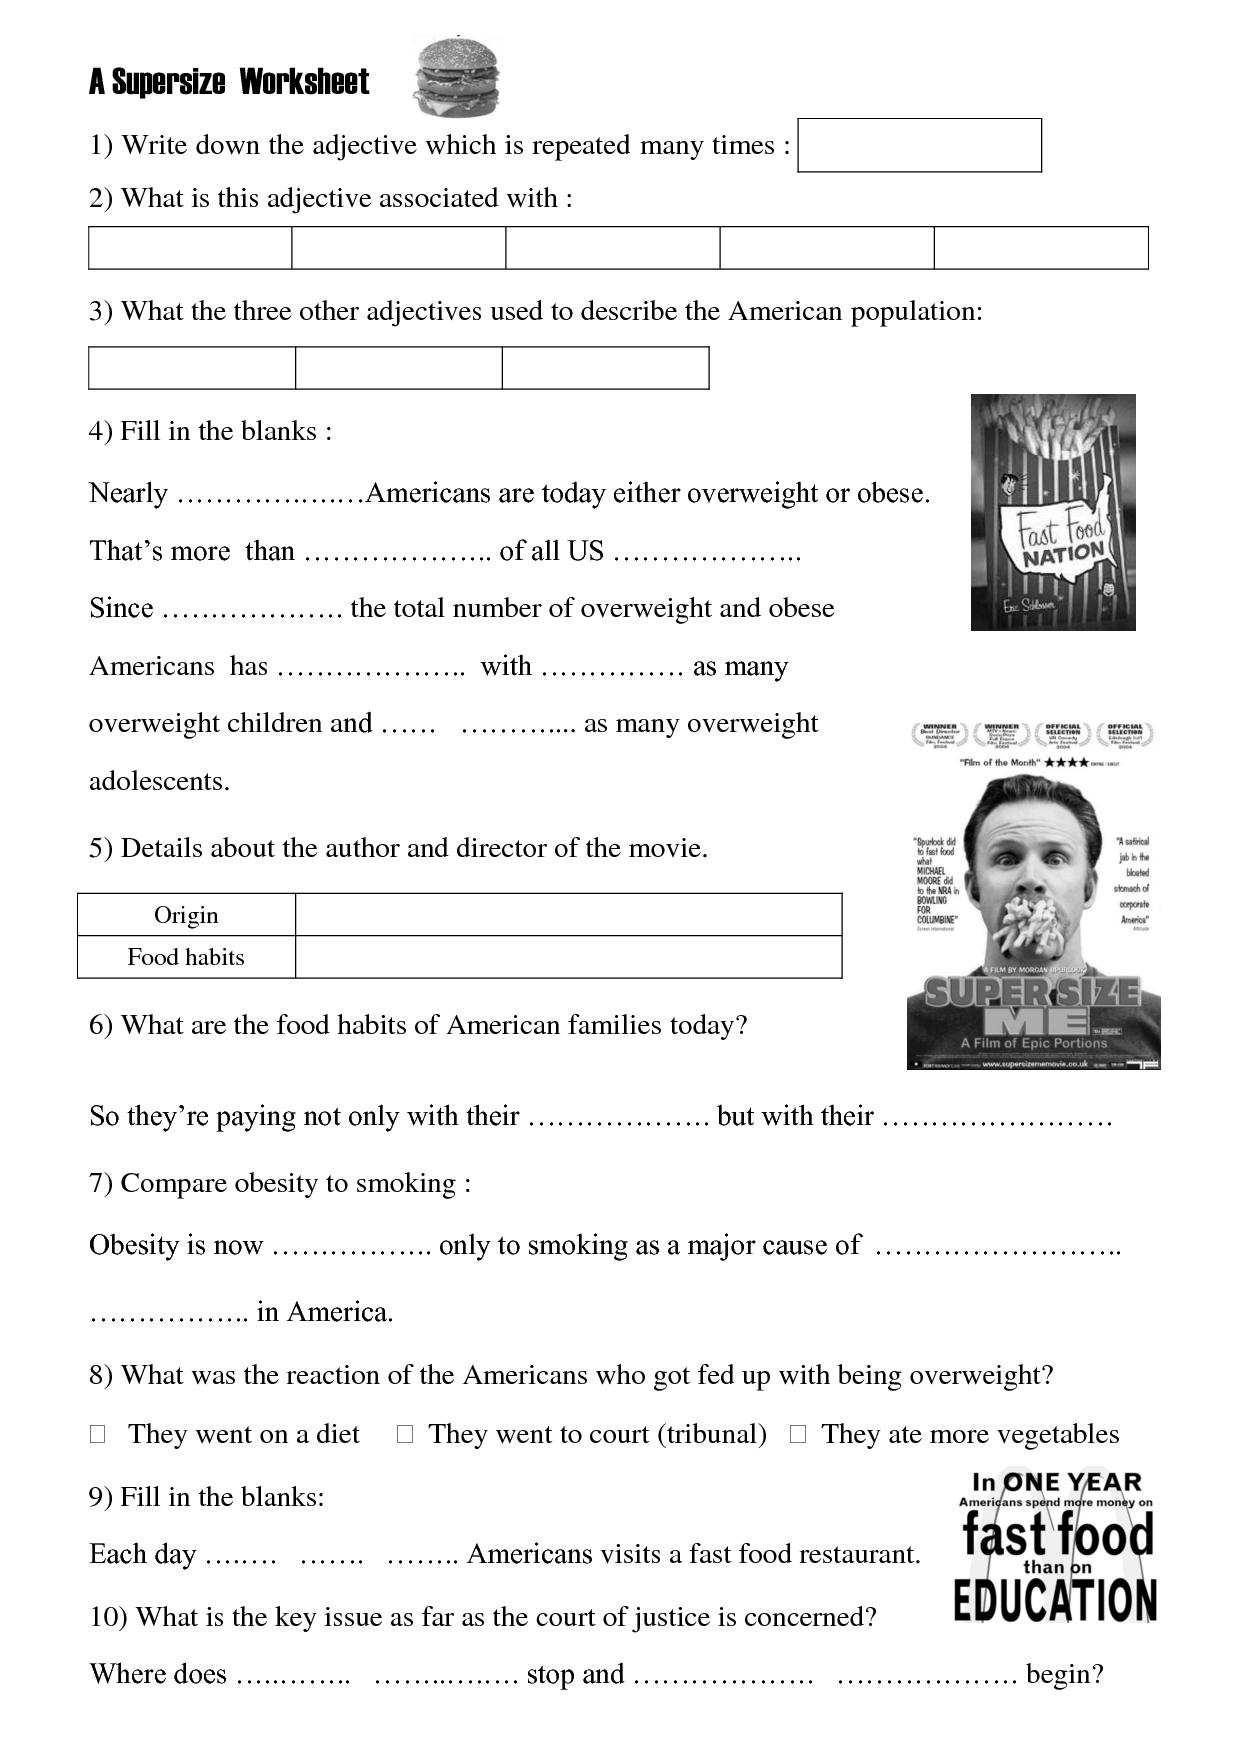 Worksheets Supersize Me Worksheet Answers movie worksheet super size me esl pinterest worksheets me